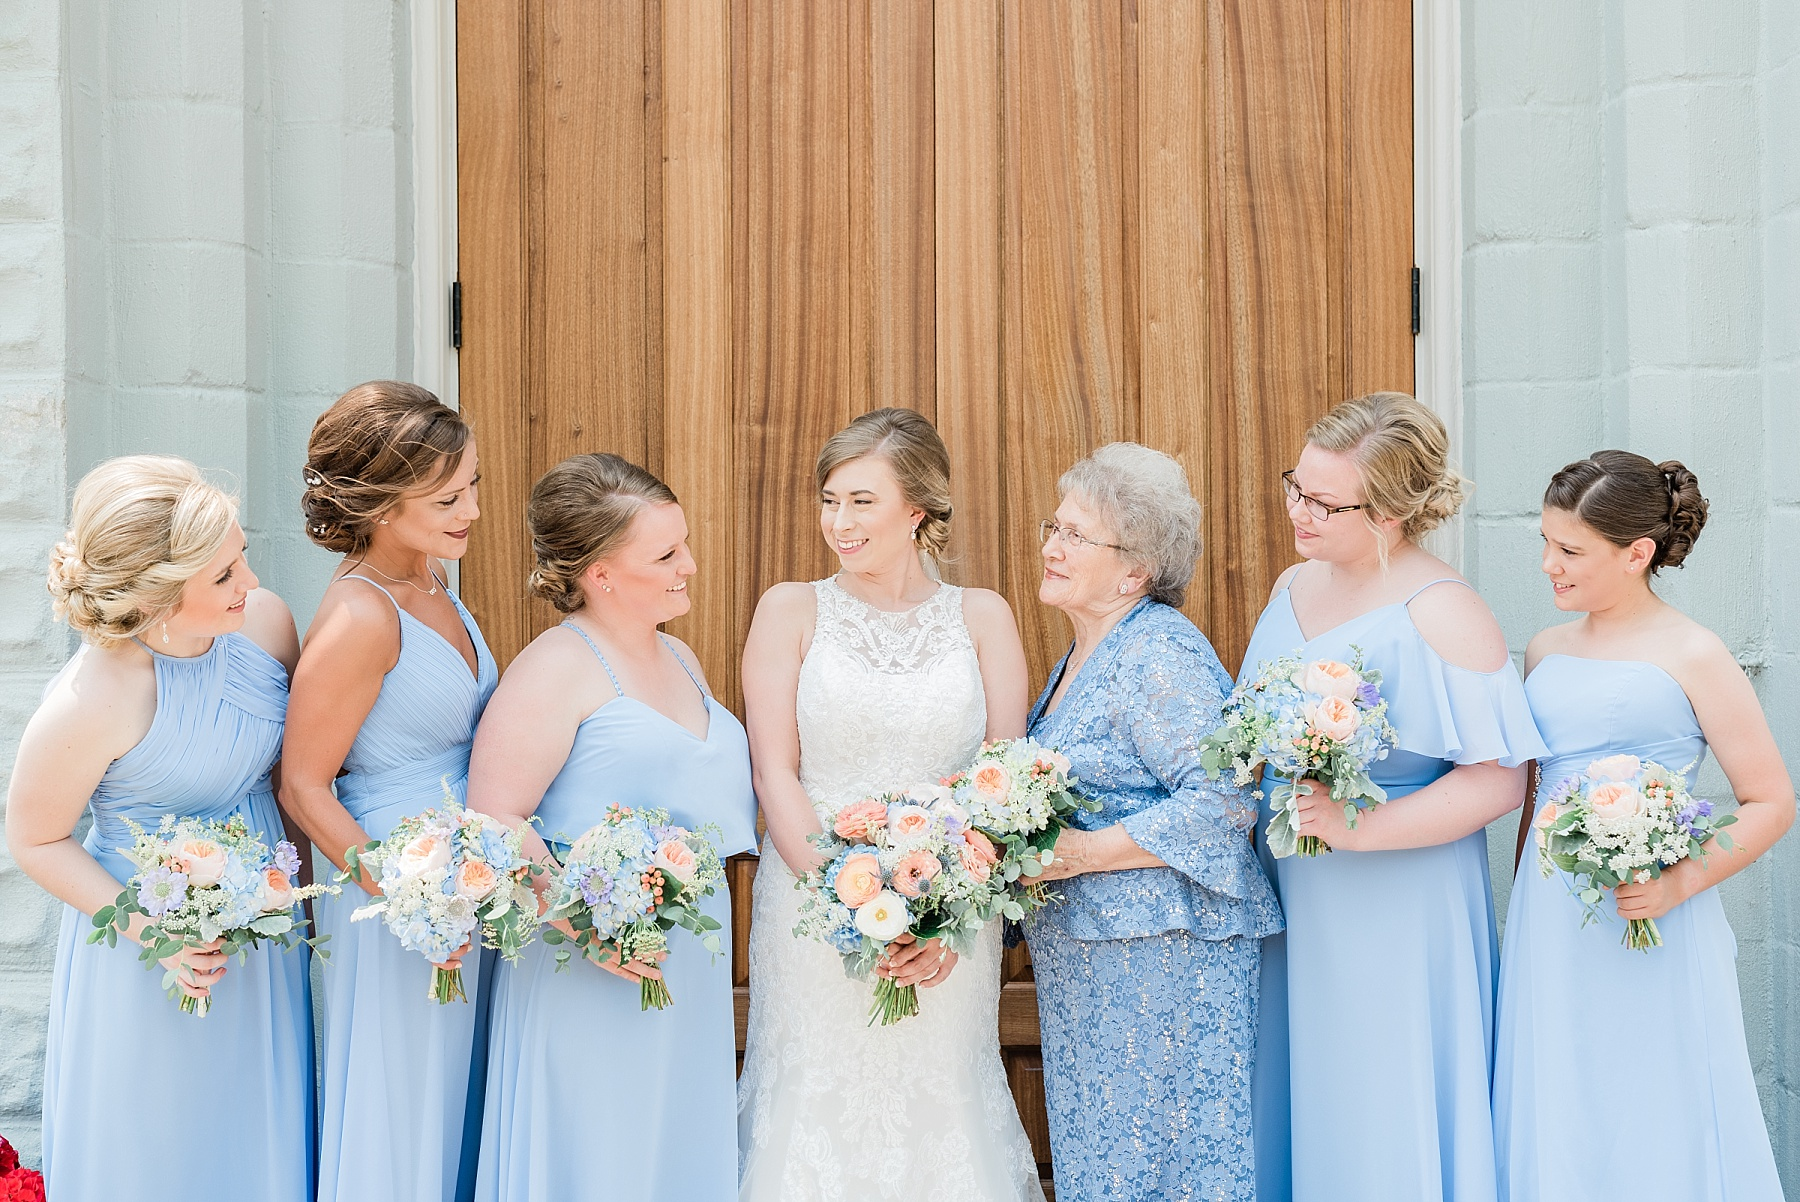 Peach and Dusty Blue Spring Wedding in Rolling Hills of Mid Missouri by Kelsi Kliethermes Photography Best Missouri and Maui Wedding Photographer_0007.jpg